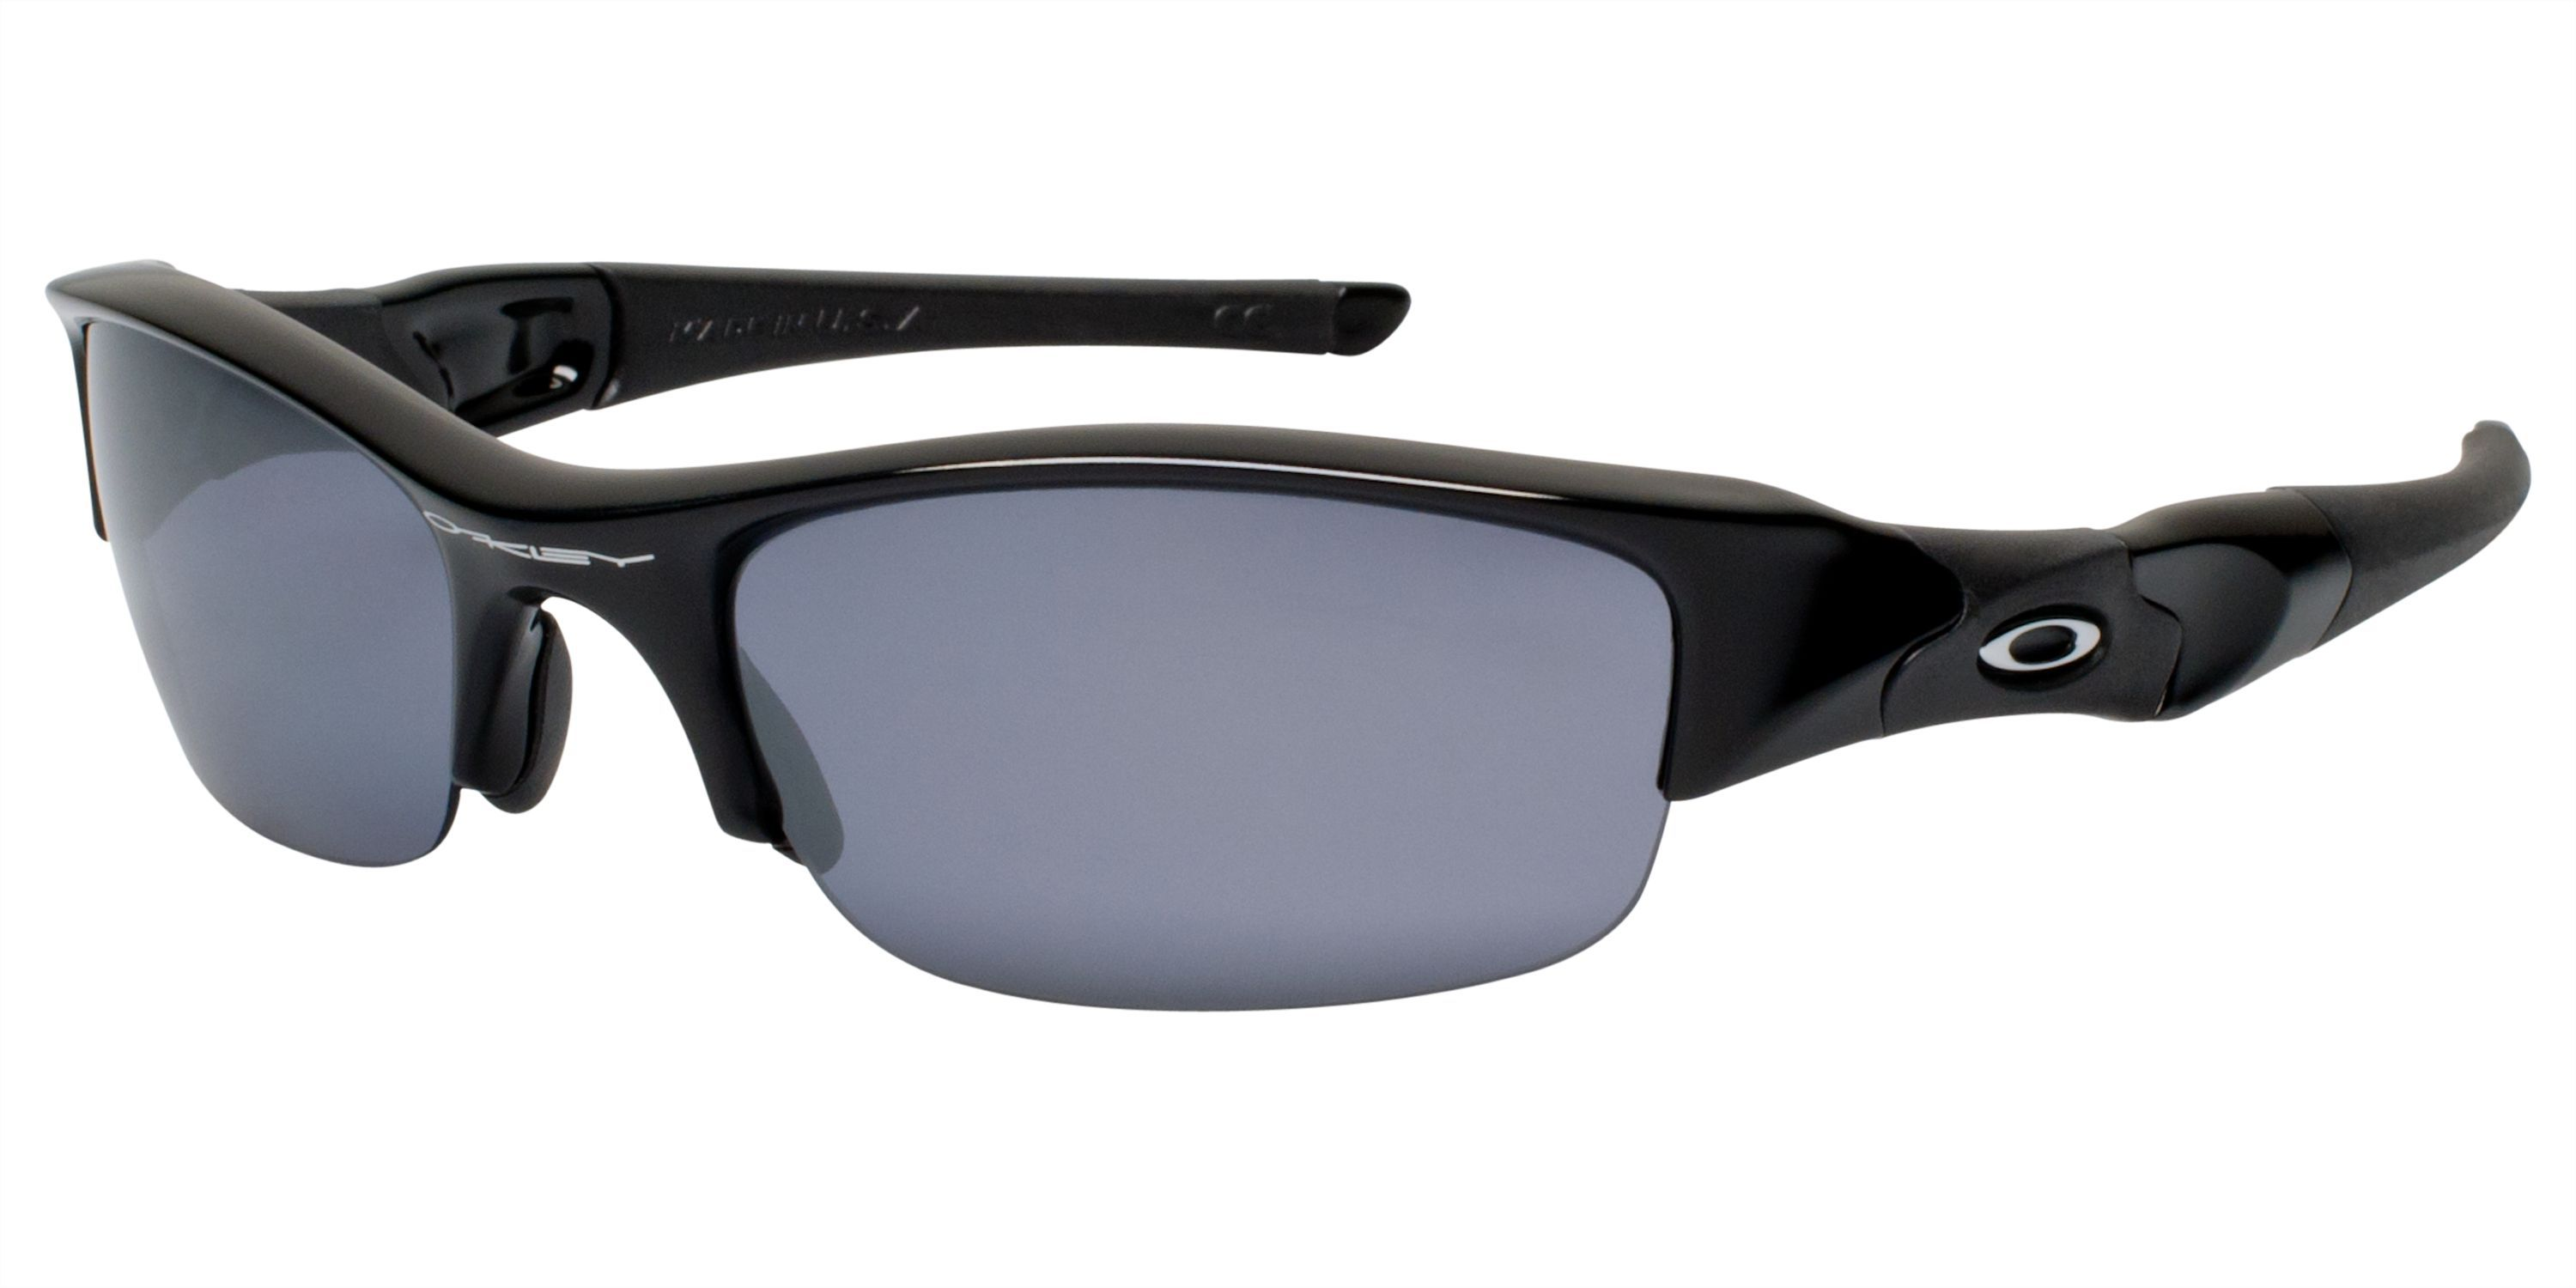 96bbe73f6b OAKLEY FLAK JACKET - Repin your favorite frame and win a USD300  LensCrafters gift certificate. Enter  30years30gifts here   www.30years30gifts.com